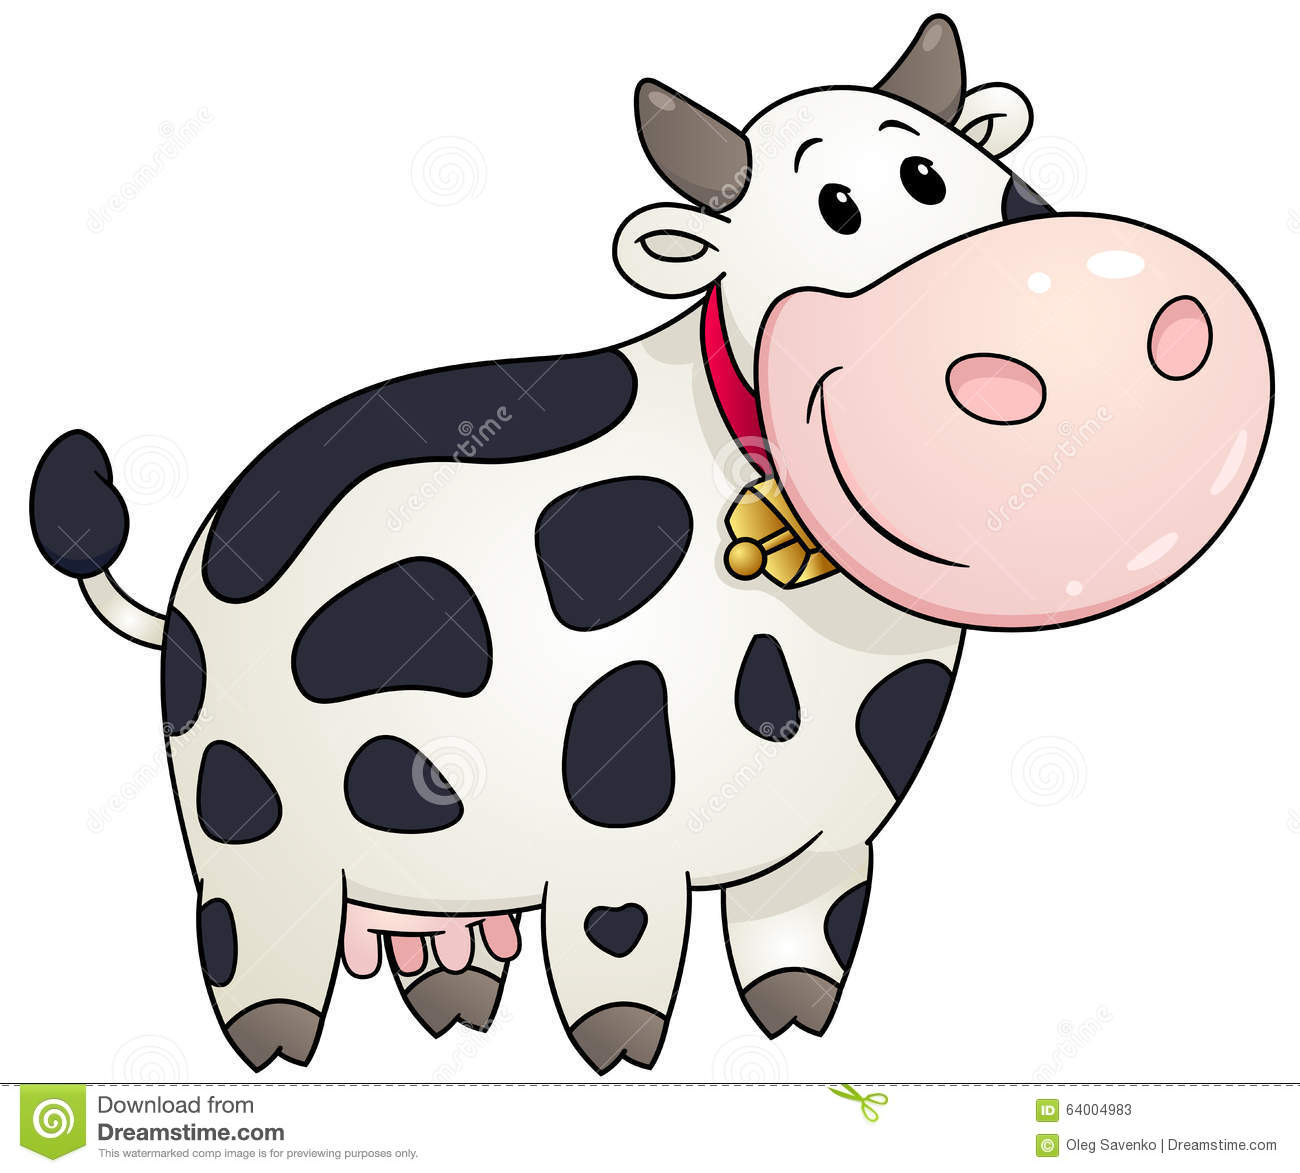 cow clipart simple - photo #7